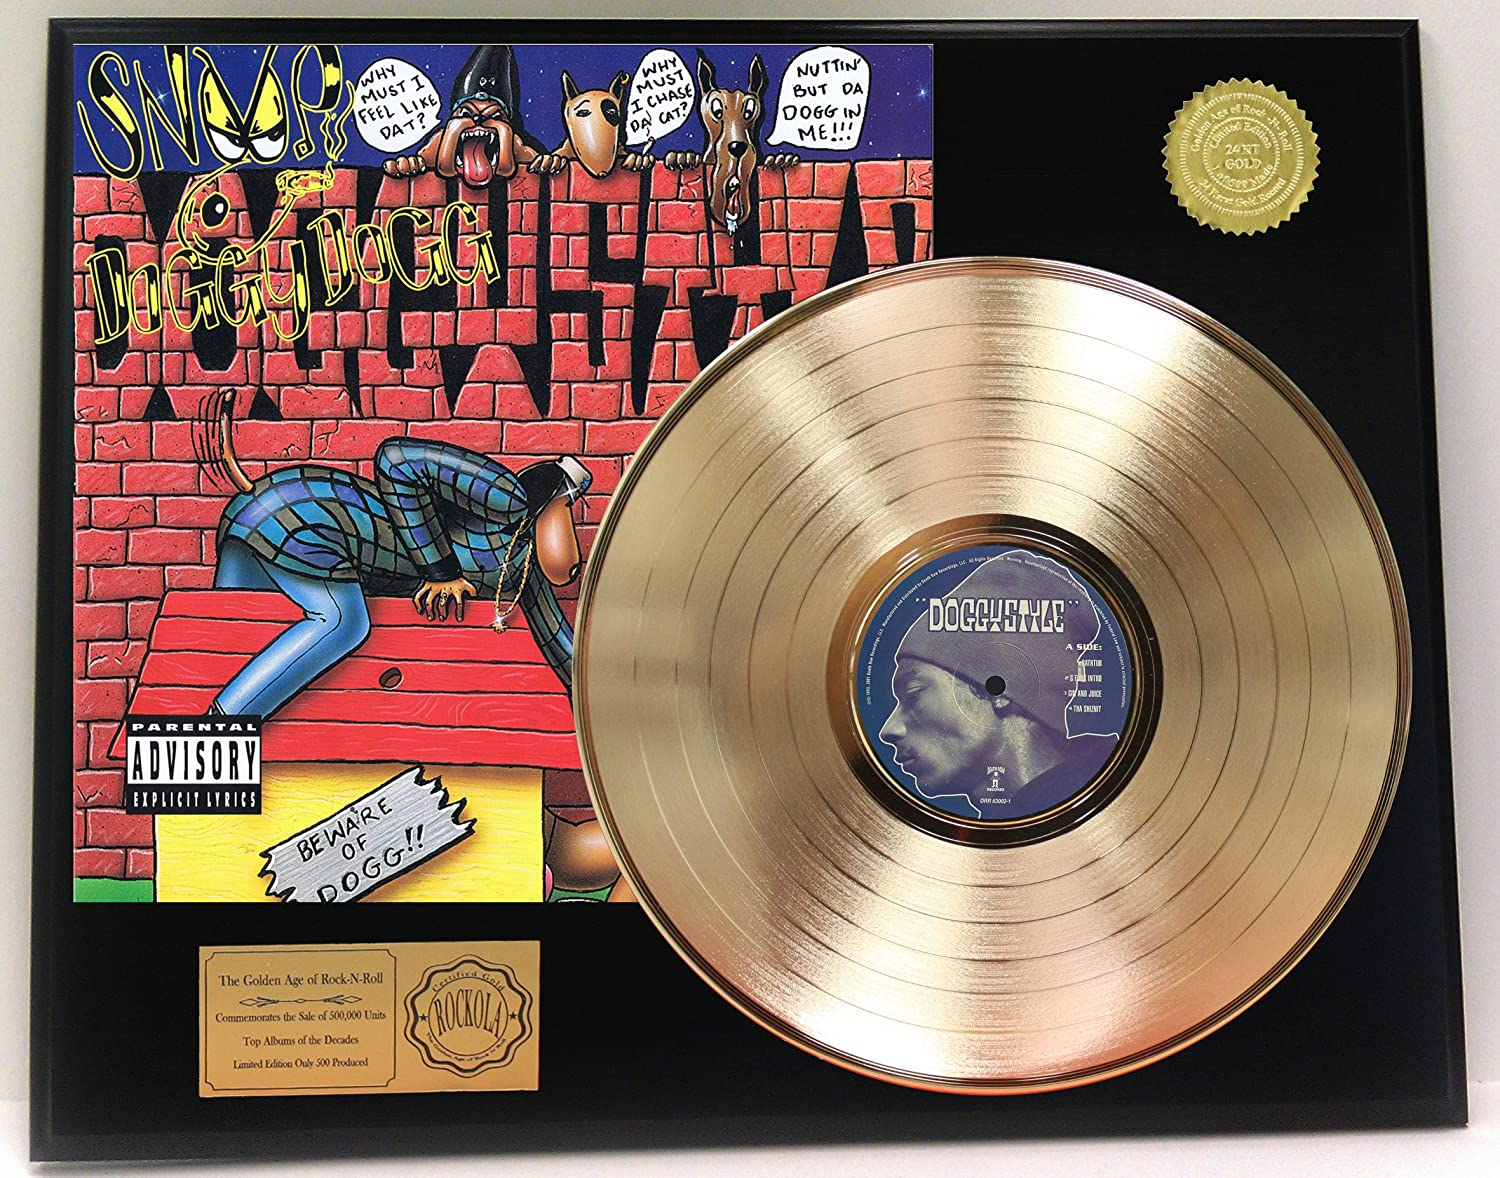 Snoop Dog'Doggystyle' Gold Clad LP Record Limited Edition Display Gold Record Outlet